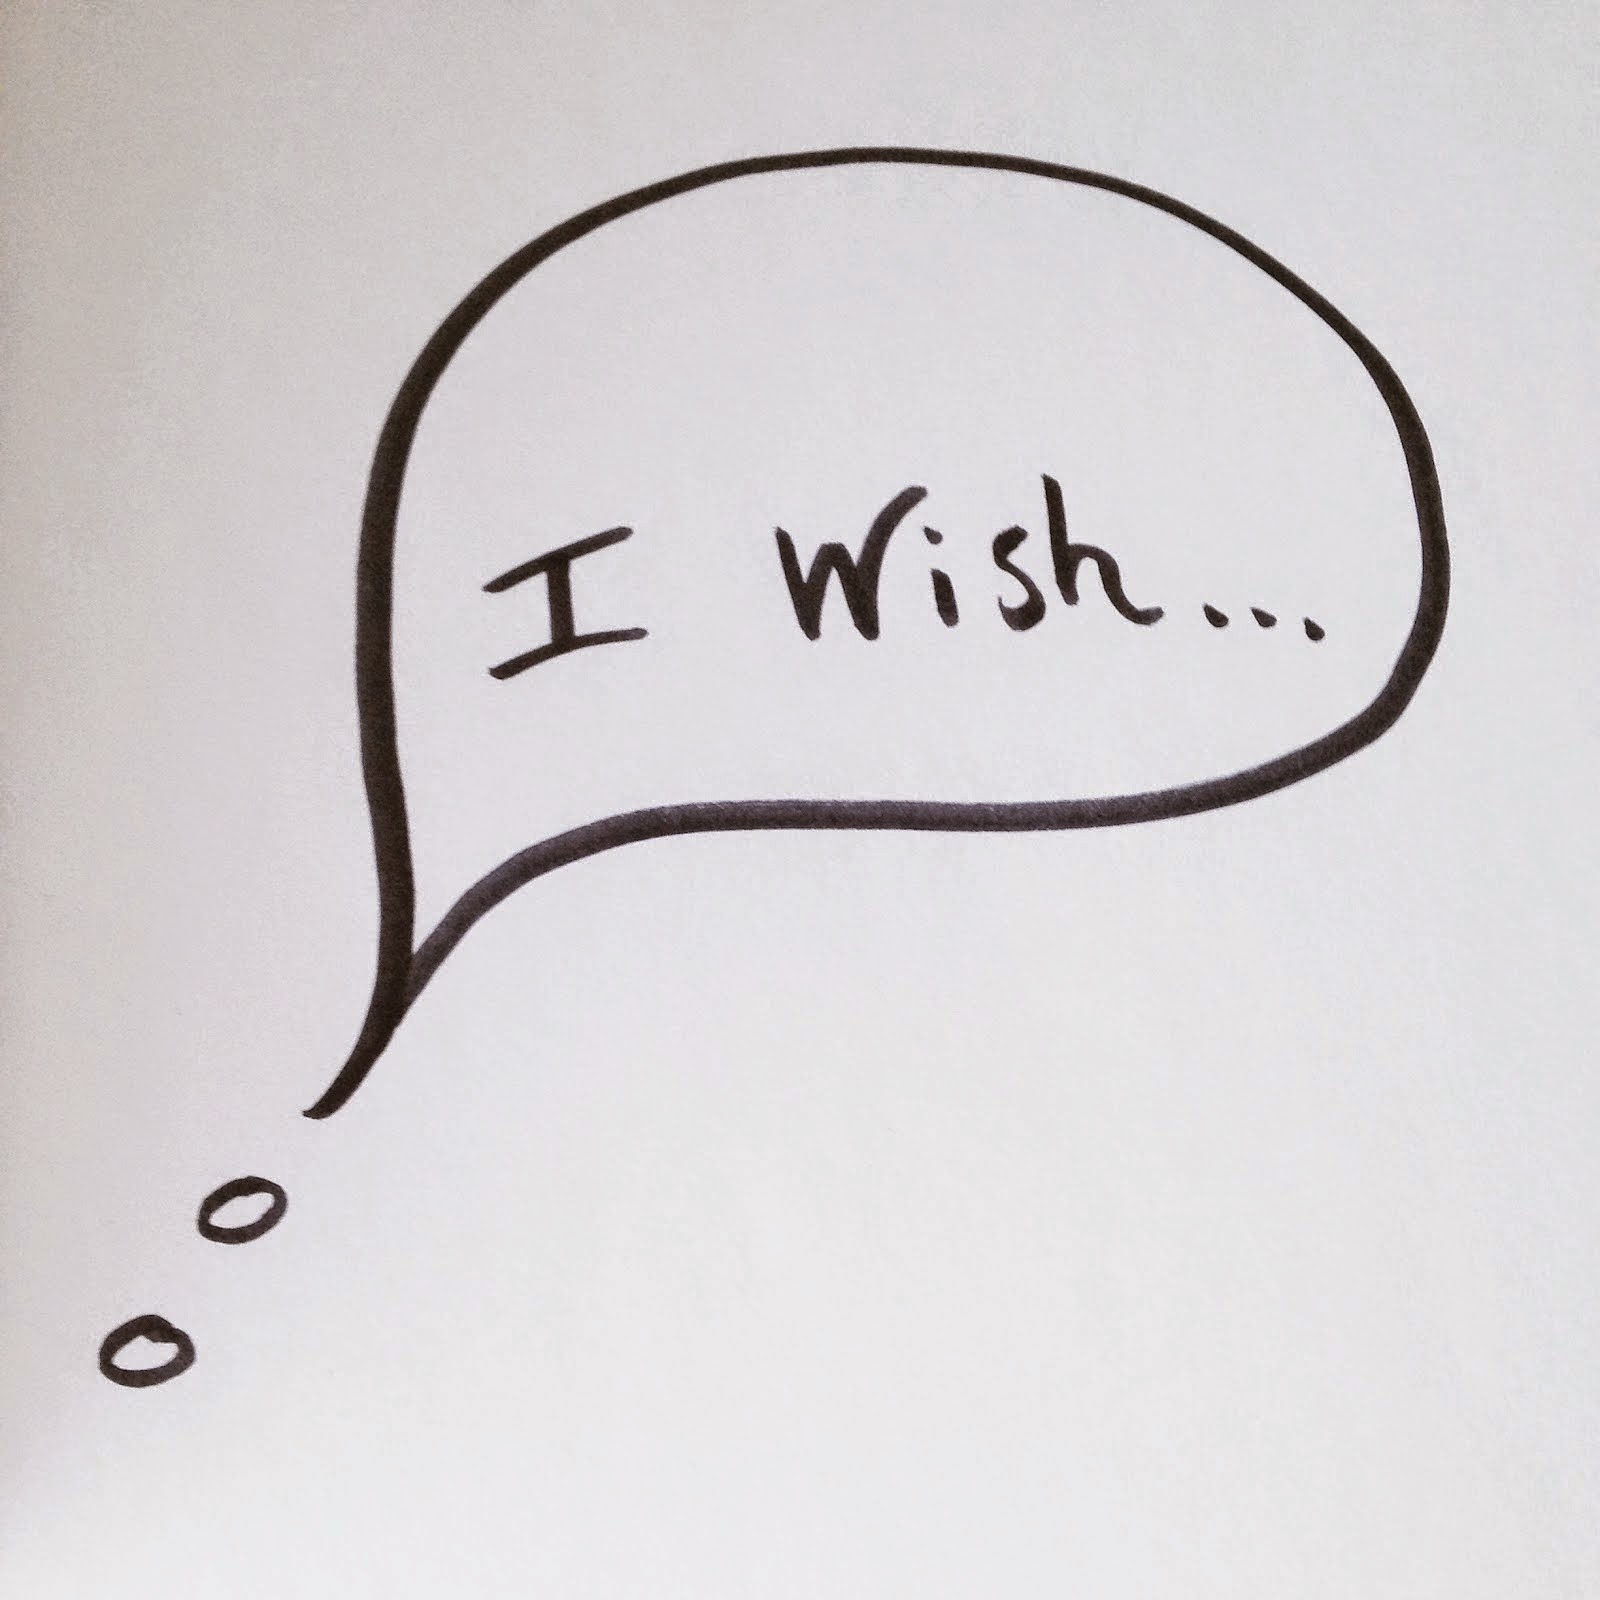 What do you wish for? Click on the image to answer.